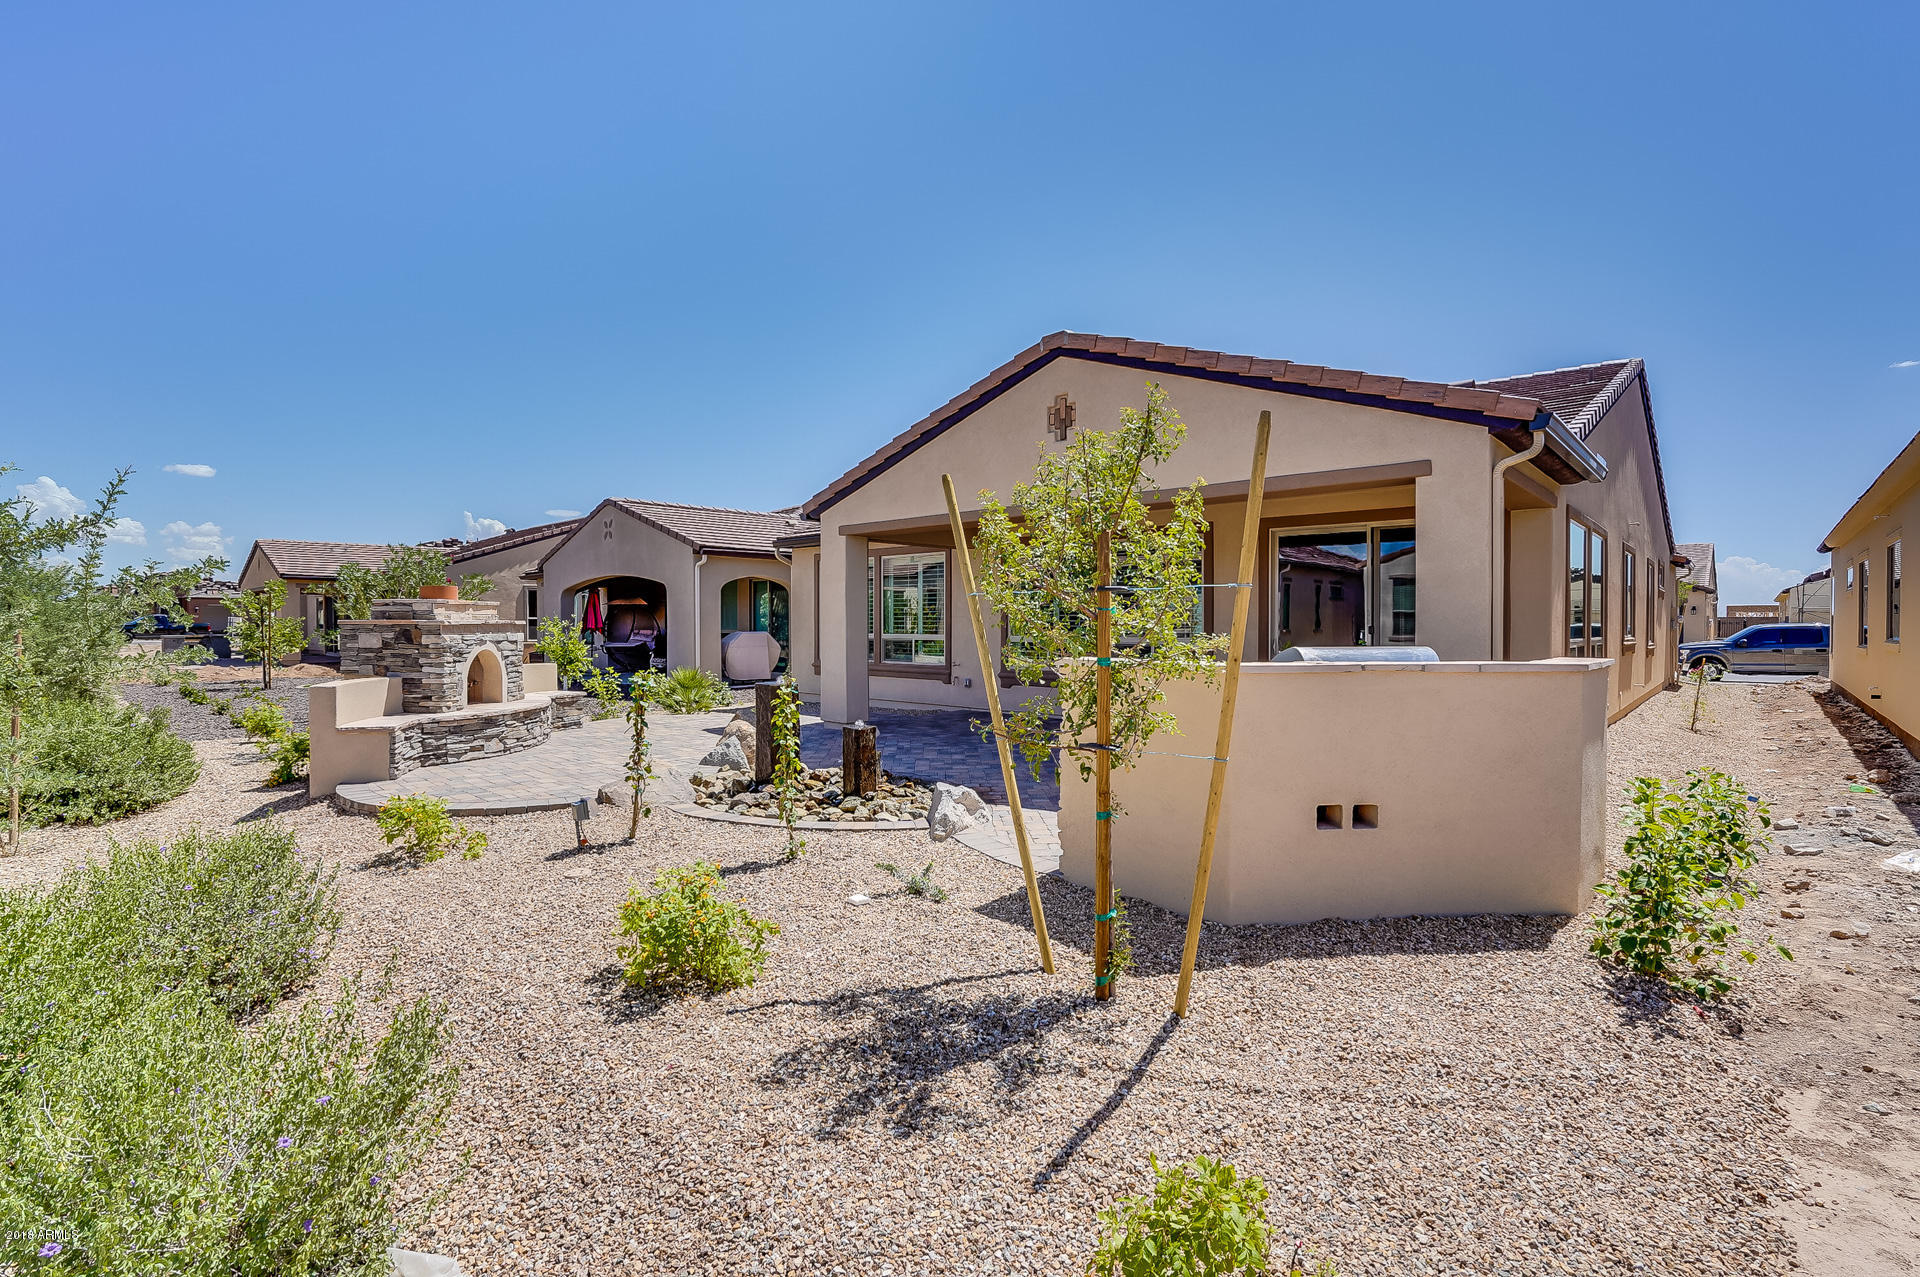 Photo for 808 E Sugar Apple Way, San Tan Valley, AZ 85140 (MLS # 5816039)